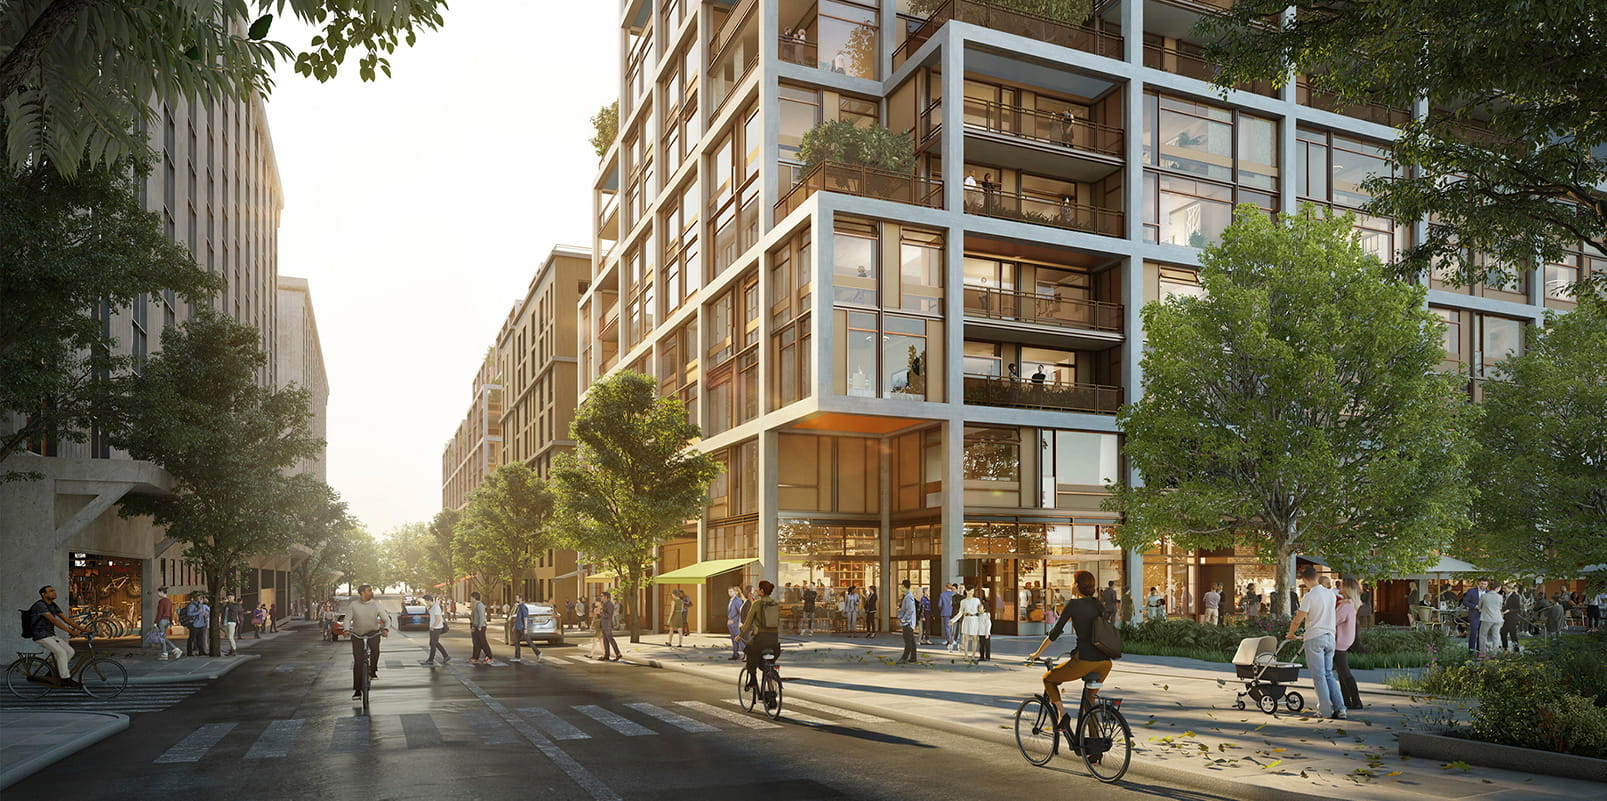 Residential Masterplan by Foster + Partners in San Fransisco